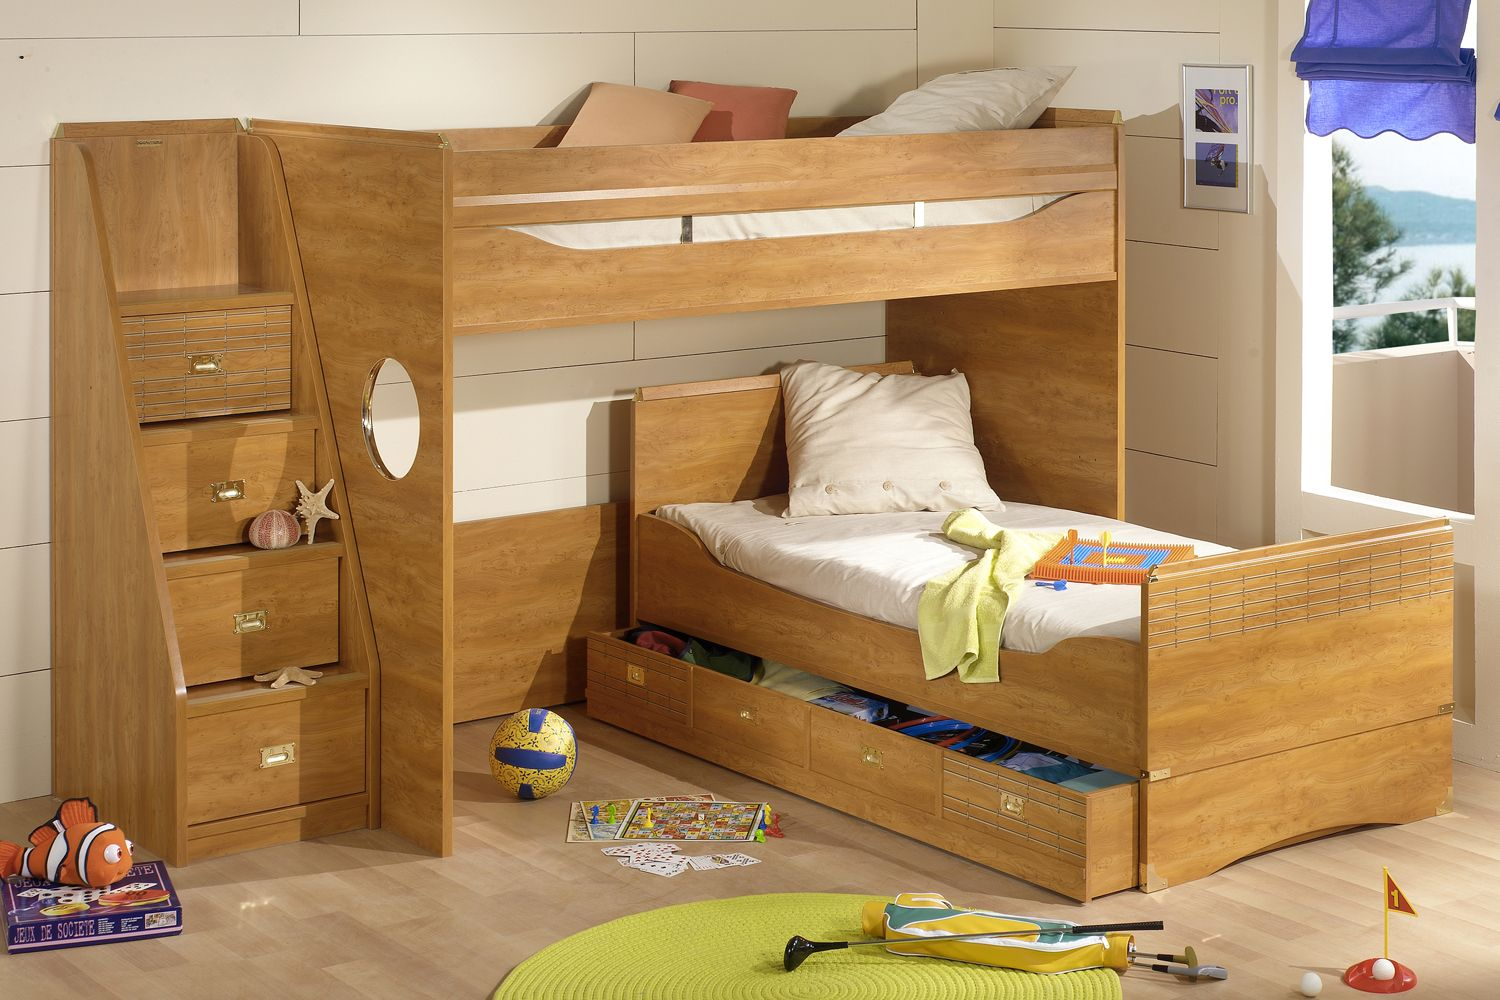 Unique L Shaped Bunk Beds As Decorative Beds For The Siblings Be